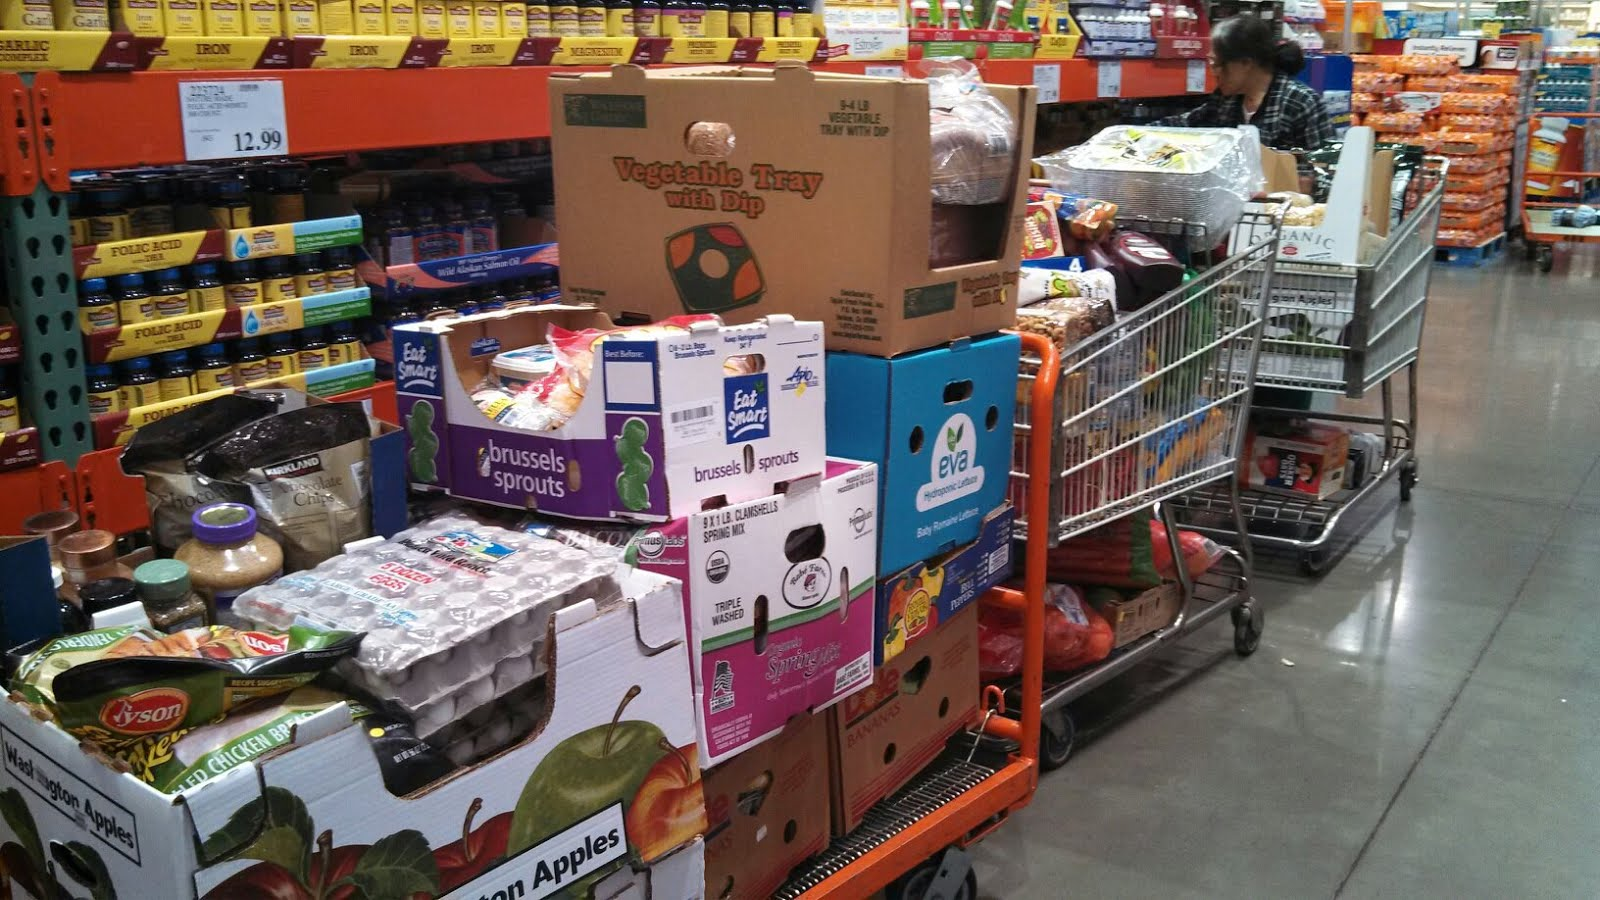 800 000 calories at costco by jennifer wilson mit cycling team blog. Black Bedroom Furniture Sets. Home Design Ideas